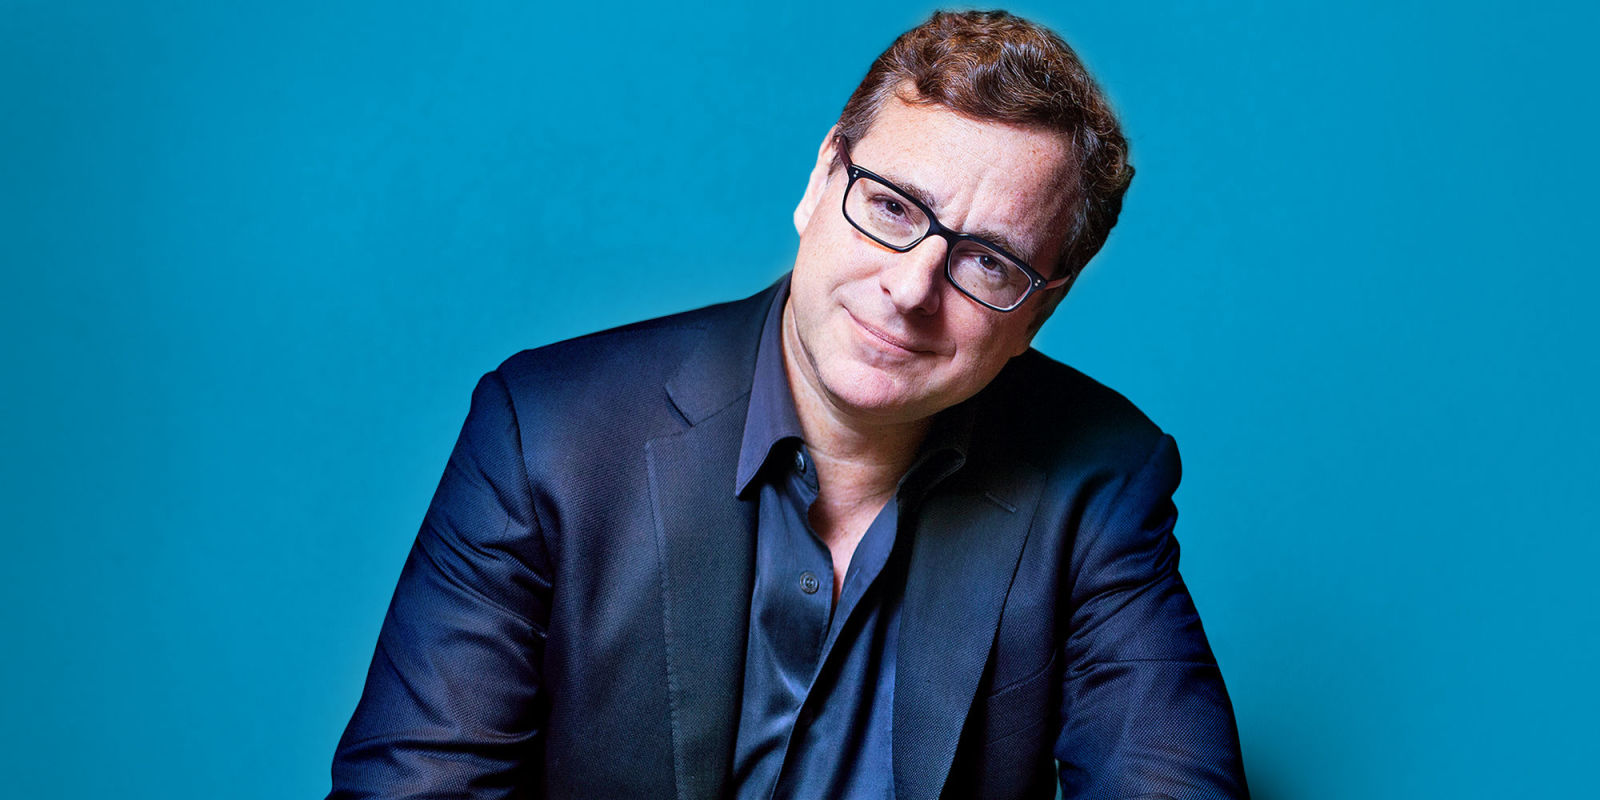 bob-saget-s-height-weight-age-body-measurements